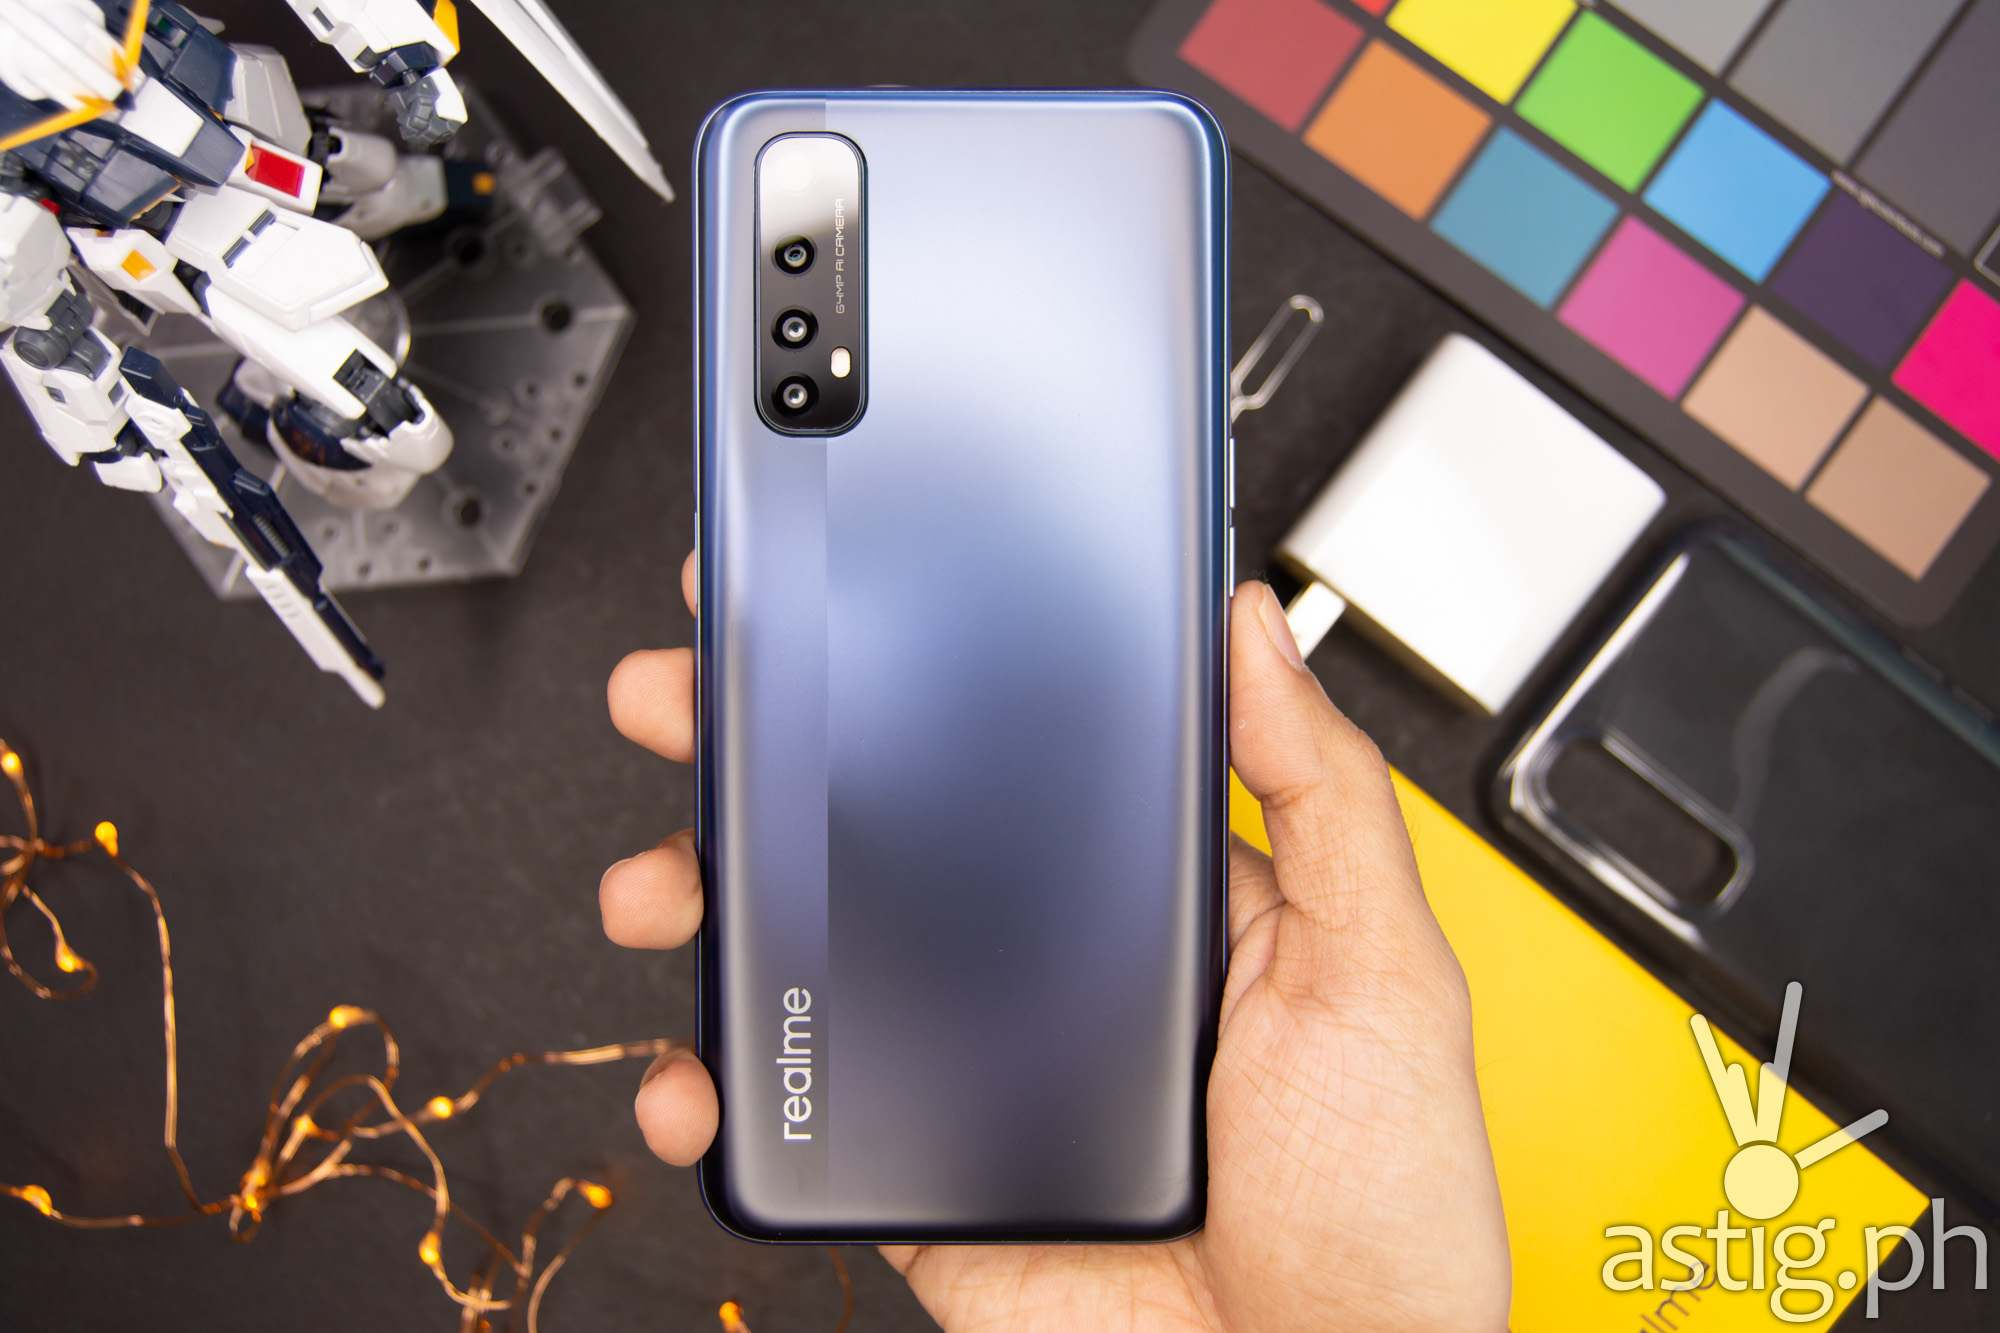 Handheld back - realme 7 (Philippines)